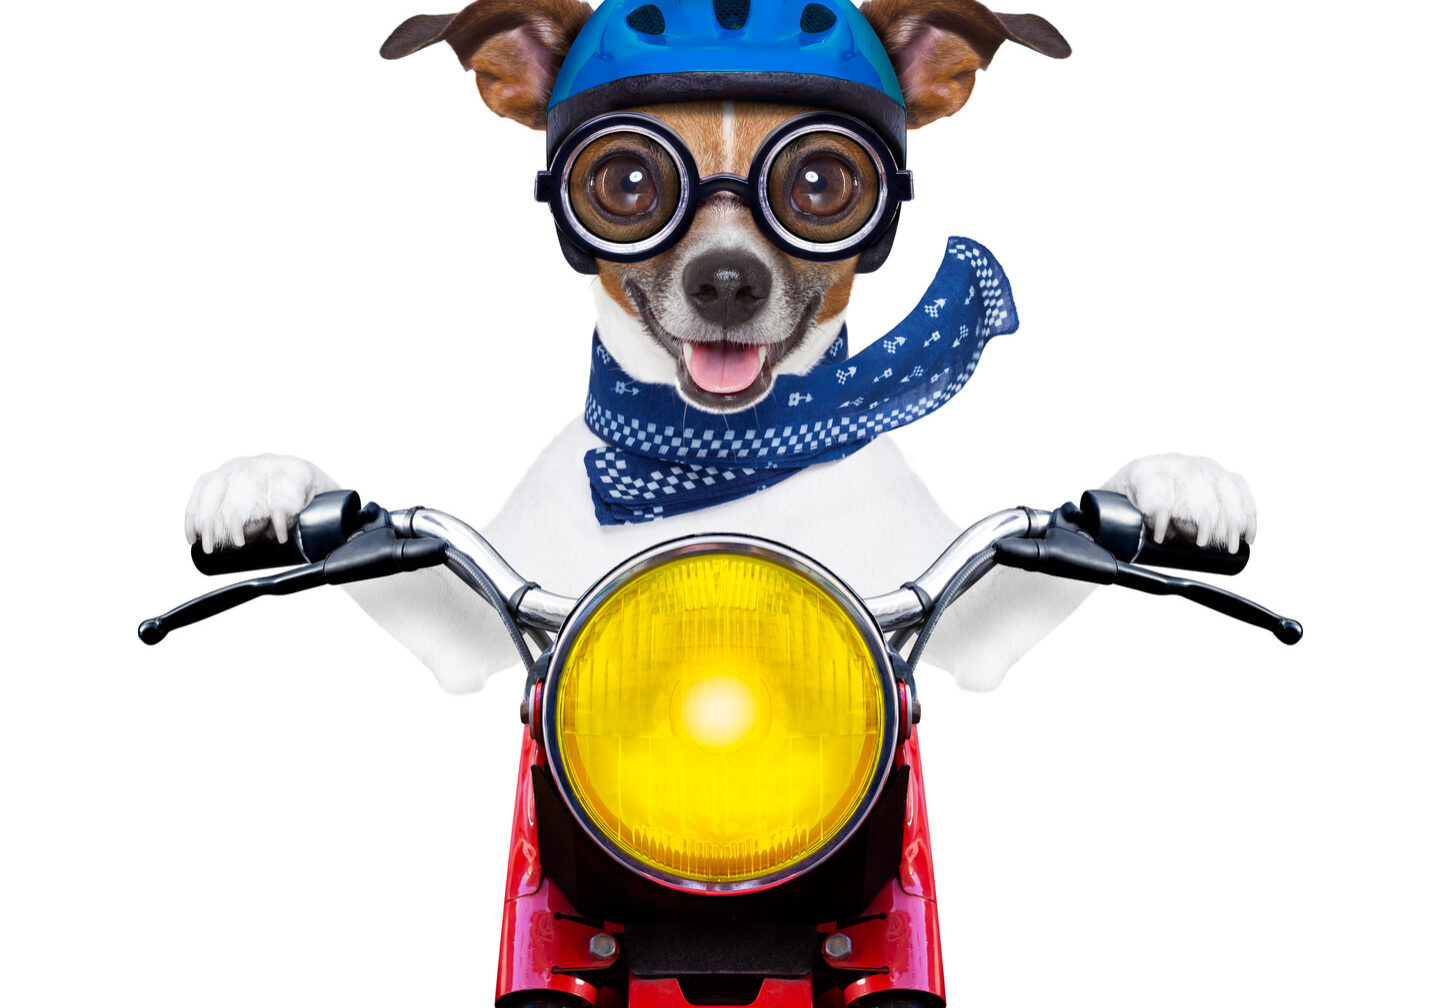 motorbike dog at speed with helmet and crazy glasses